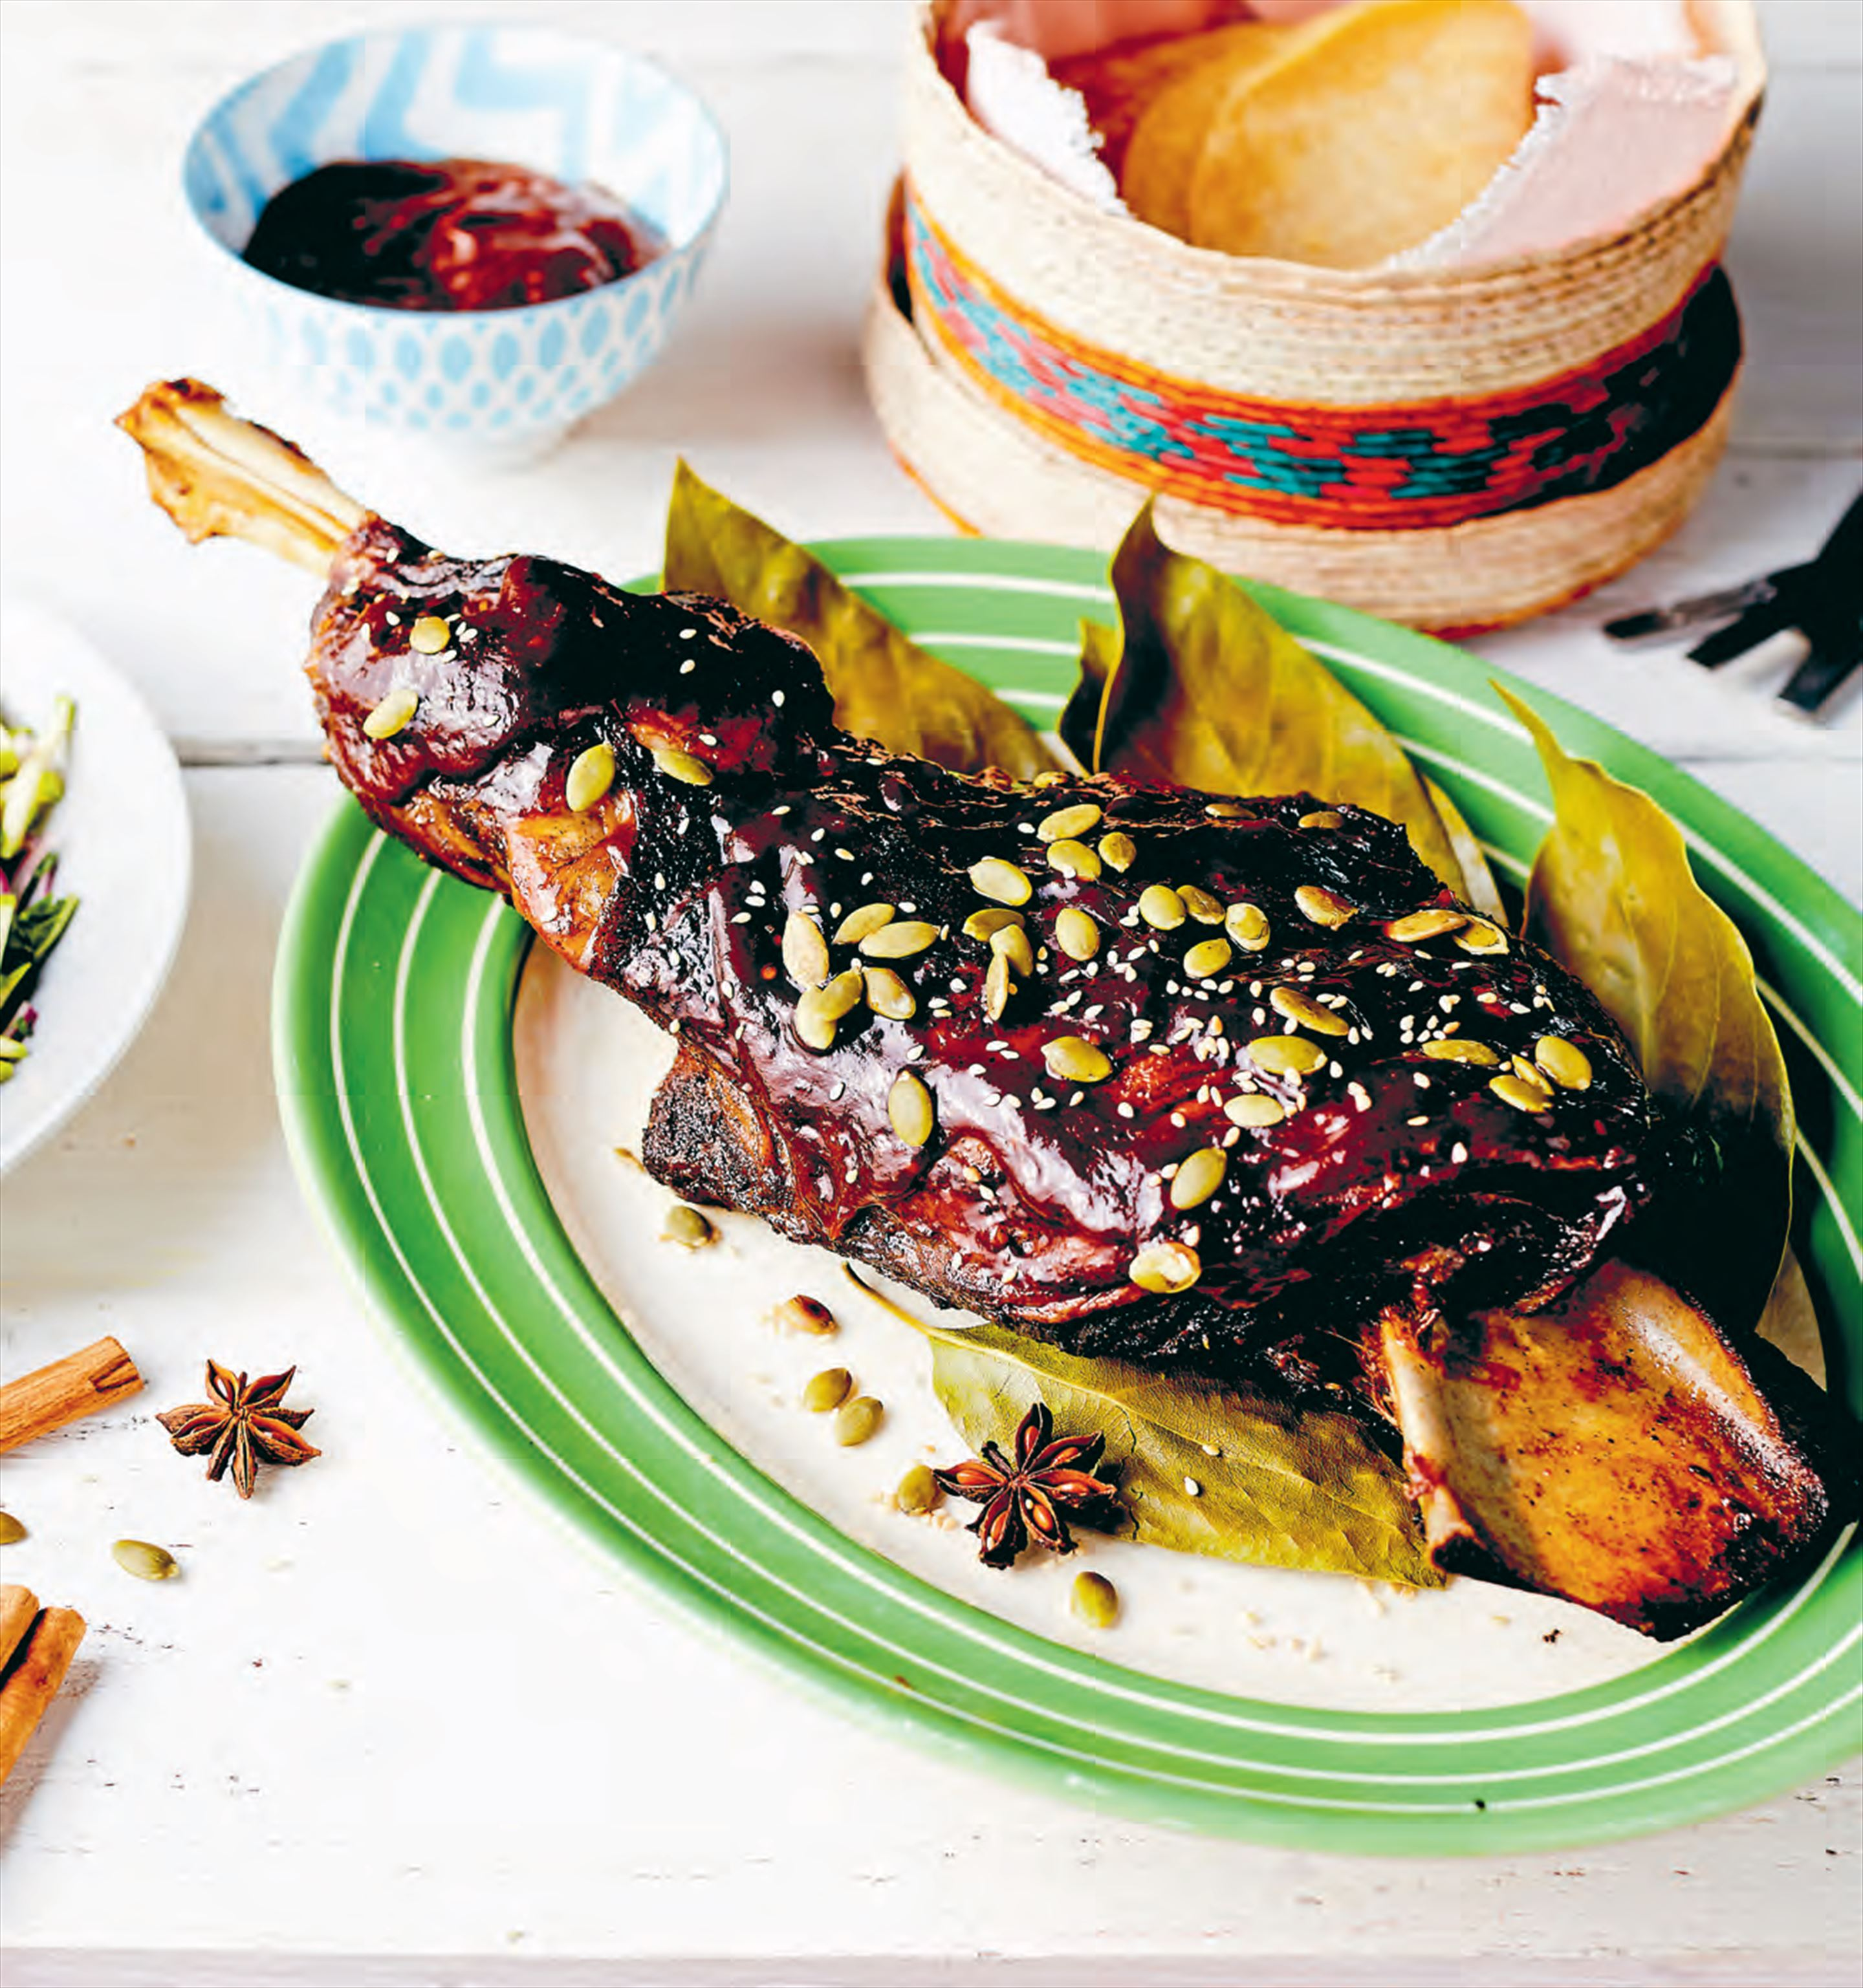 Slow roasted lamb 'barbecoa style' with tamarind chilli mole